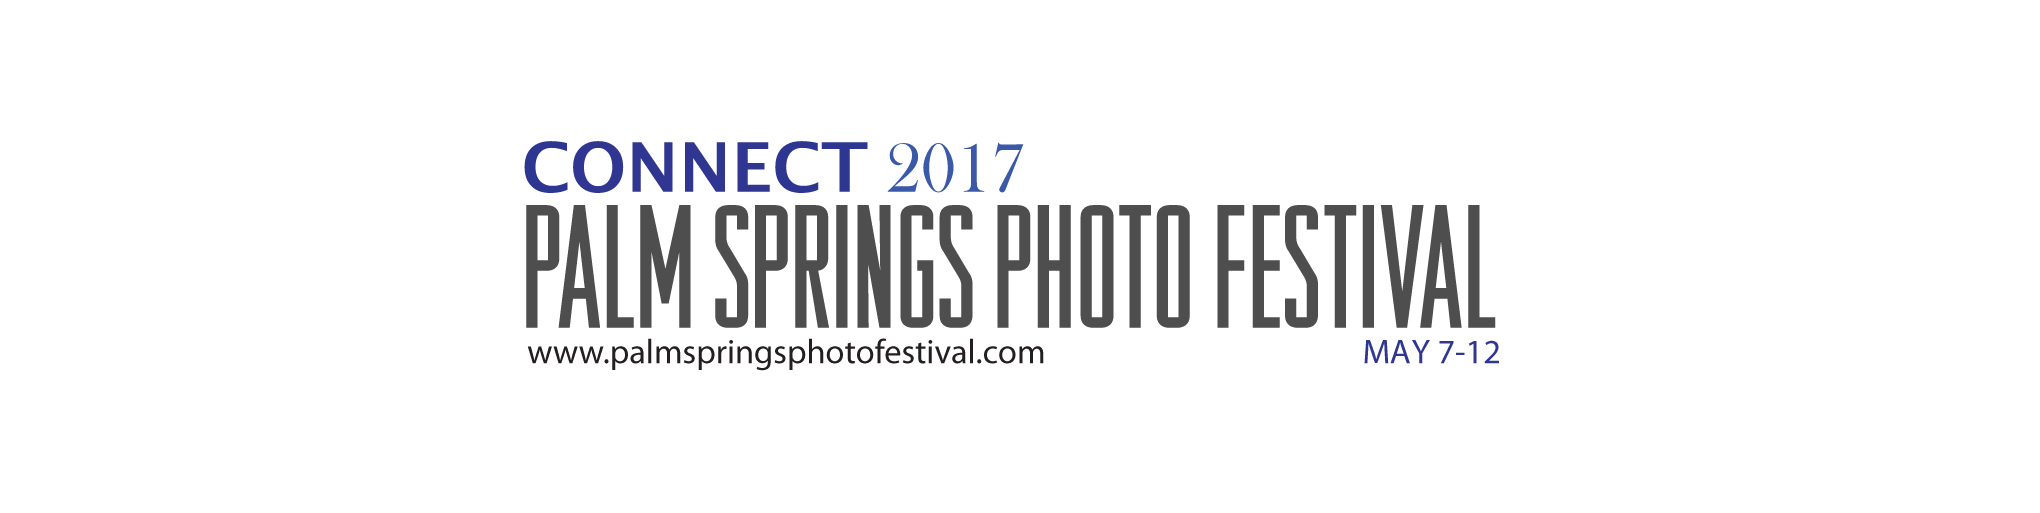 palm-springs-photo-festival-2017_o